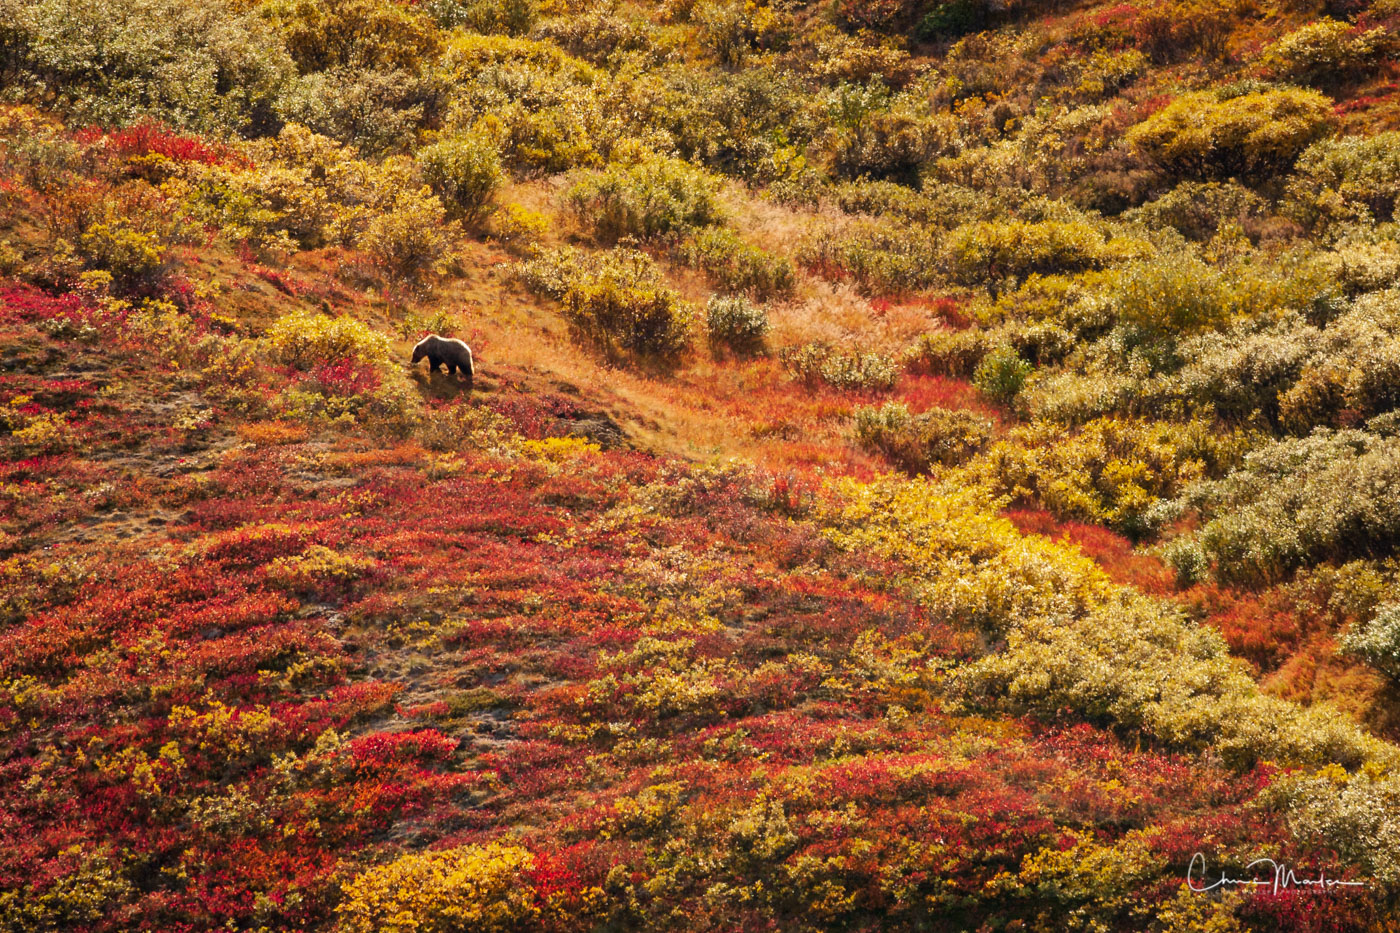 Grizzly, bear, Denali National Park, Alaska, autumn, hillside, wildlife, photo